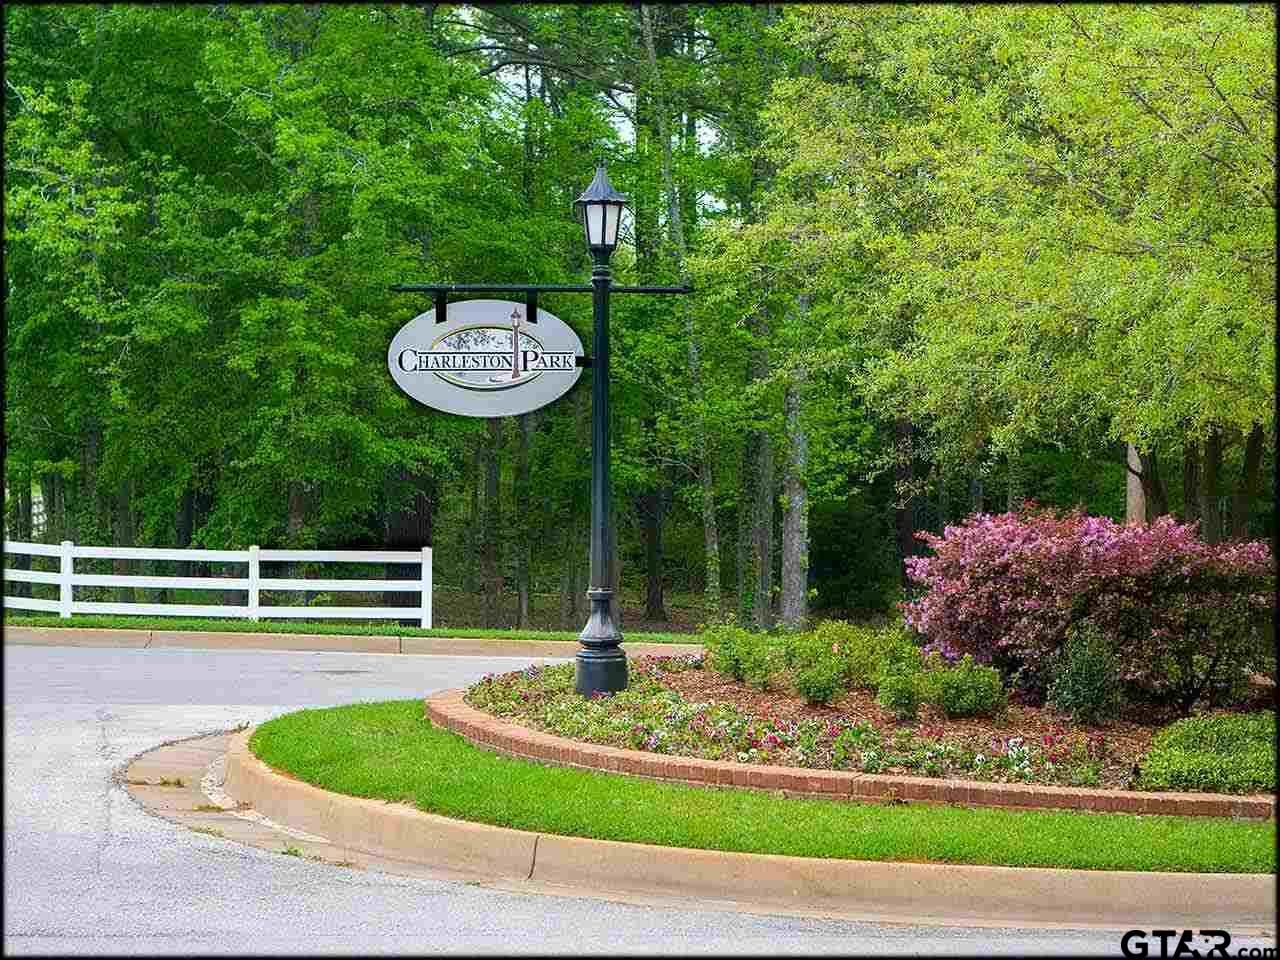 Beautiful Estate Lot in Charming Charleston Park. Build your dream home on this wooded .713 acre lot in this unique community, in walking distance to UT Tyler. Architectural styles reminiscent of Charleston, South Carolina style row houses, each homes is unique with inviting front porches and stoops.  Iron lampposts light sidewalks in the evenings for walks before dinner.  Enjoy the community pool in summer, too. Charleston Park is one-of-a-kind in Tyler, isn't it time to slow down enough to savor your home?